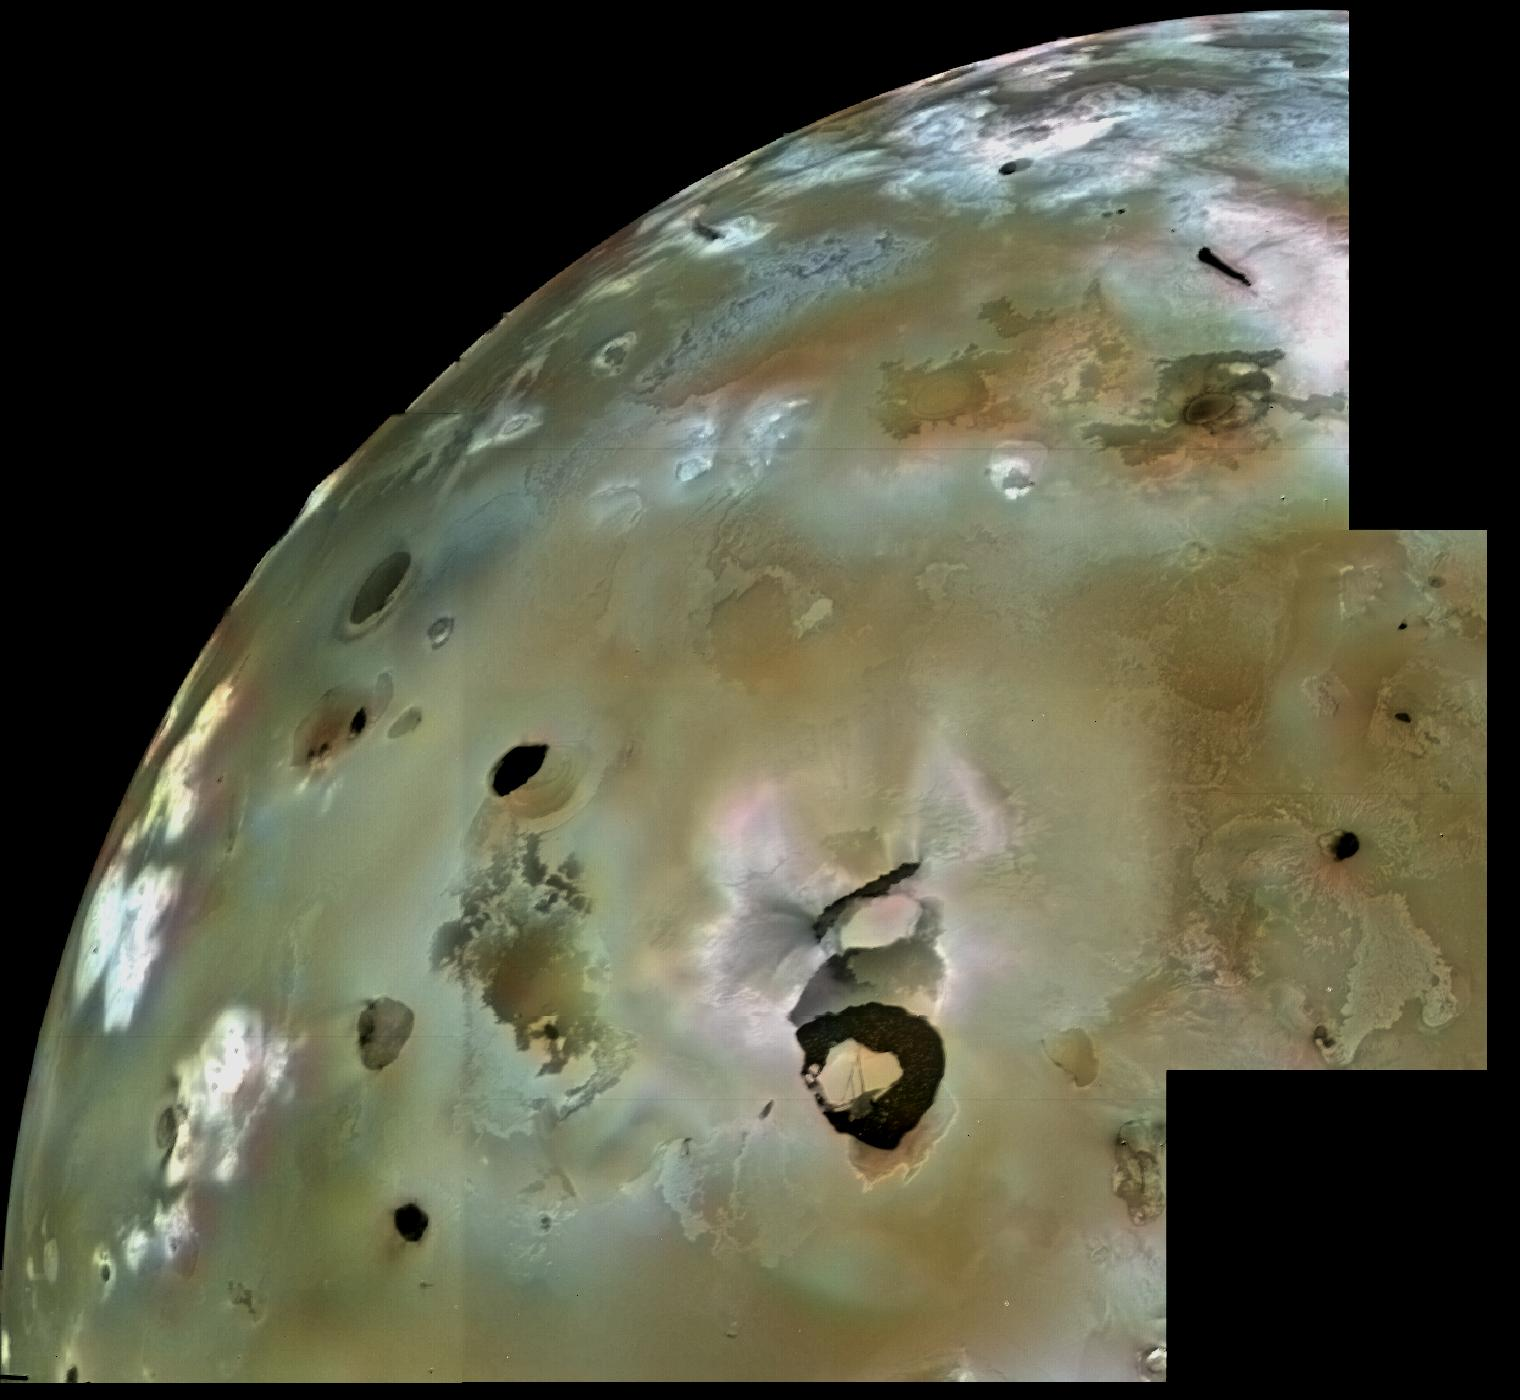 Volcanic Eruptions on Jupiter's Moon Io Tracked Over Time